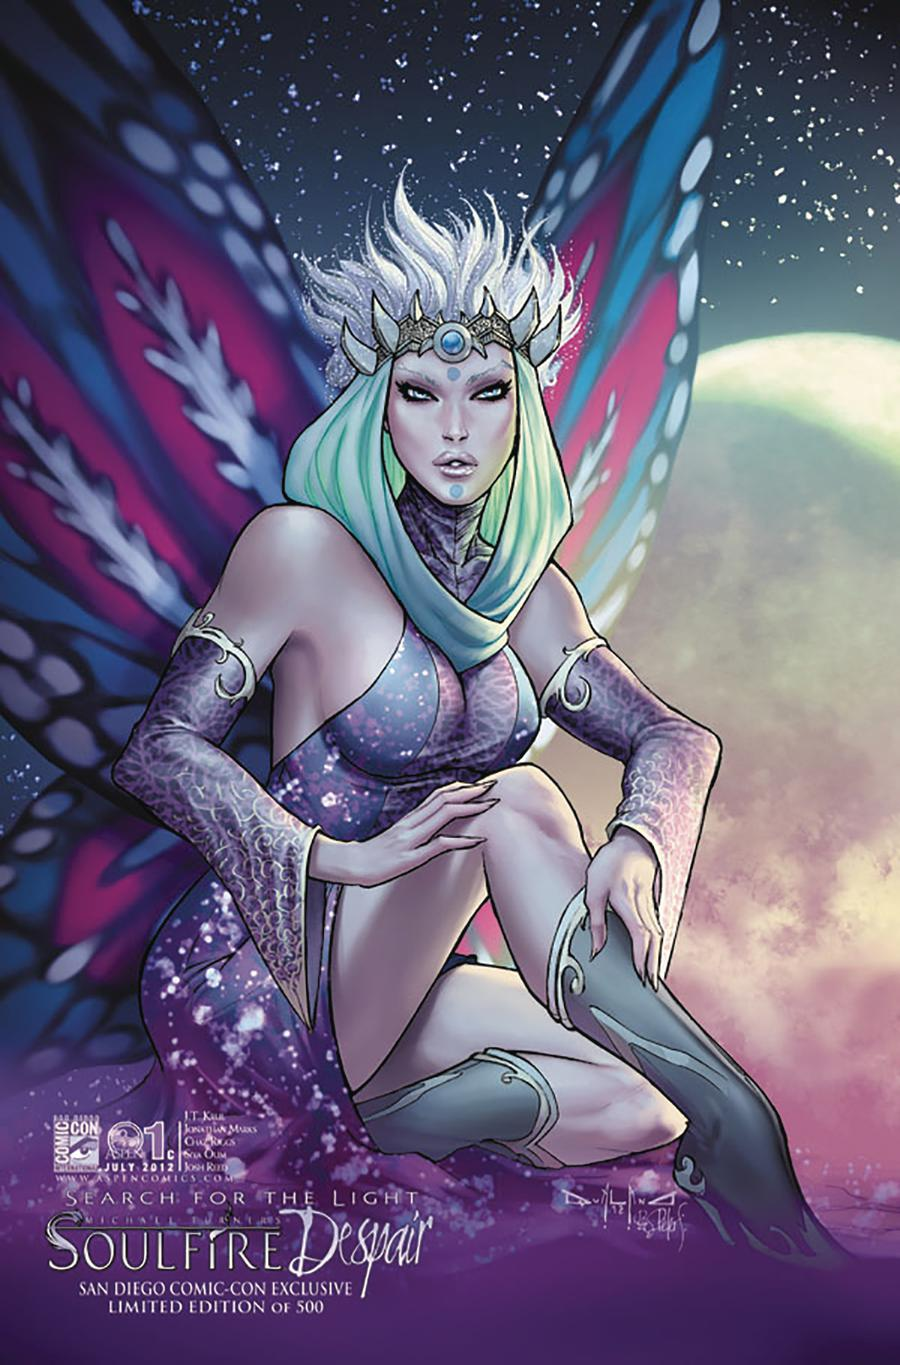 Soulfire Despair #1 Cover C SDCC 2012 Exclusive Limited Edition Pasquale Qualano Variant Cover